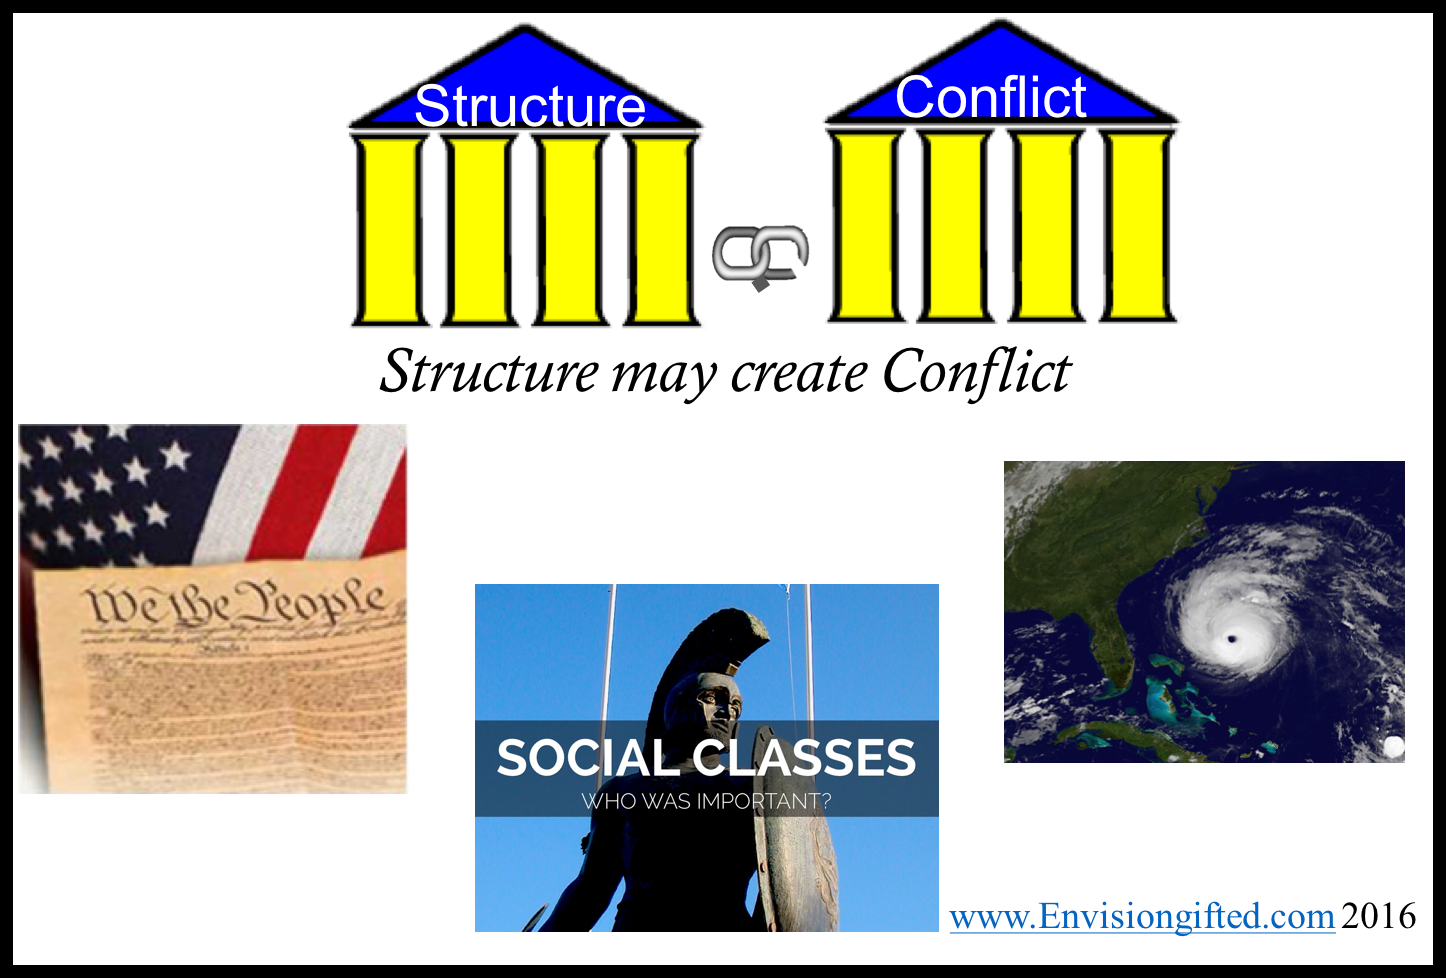 Envision Gifted. Universal Theme Structure May Create Conflict